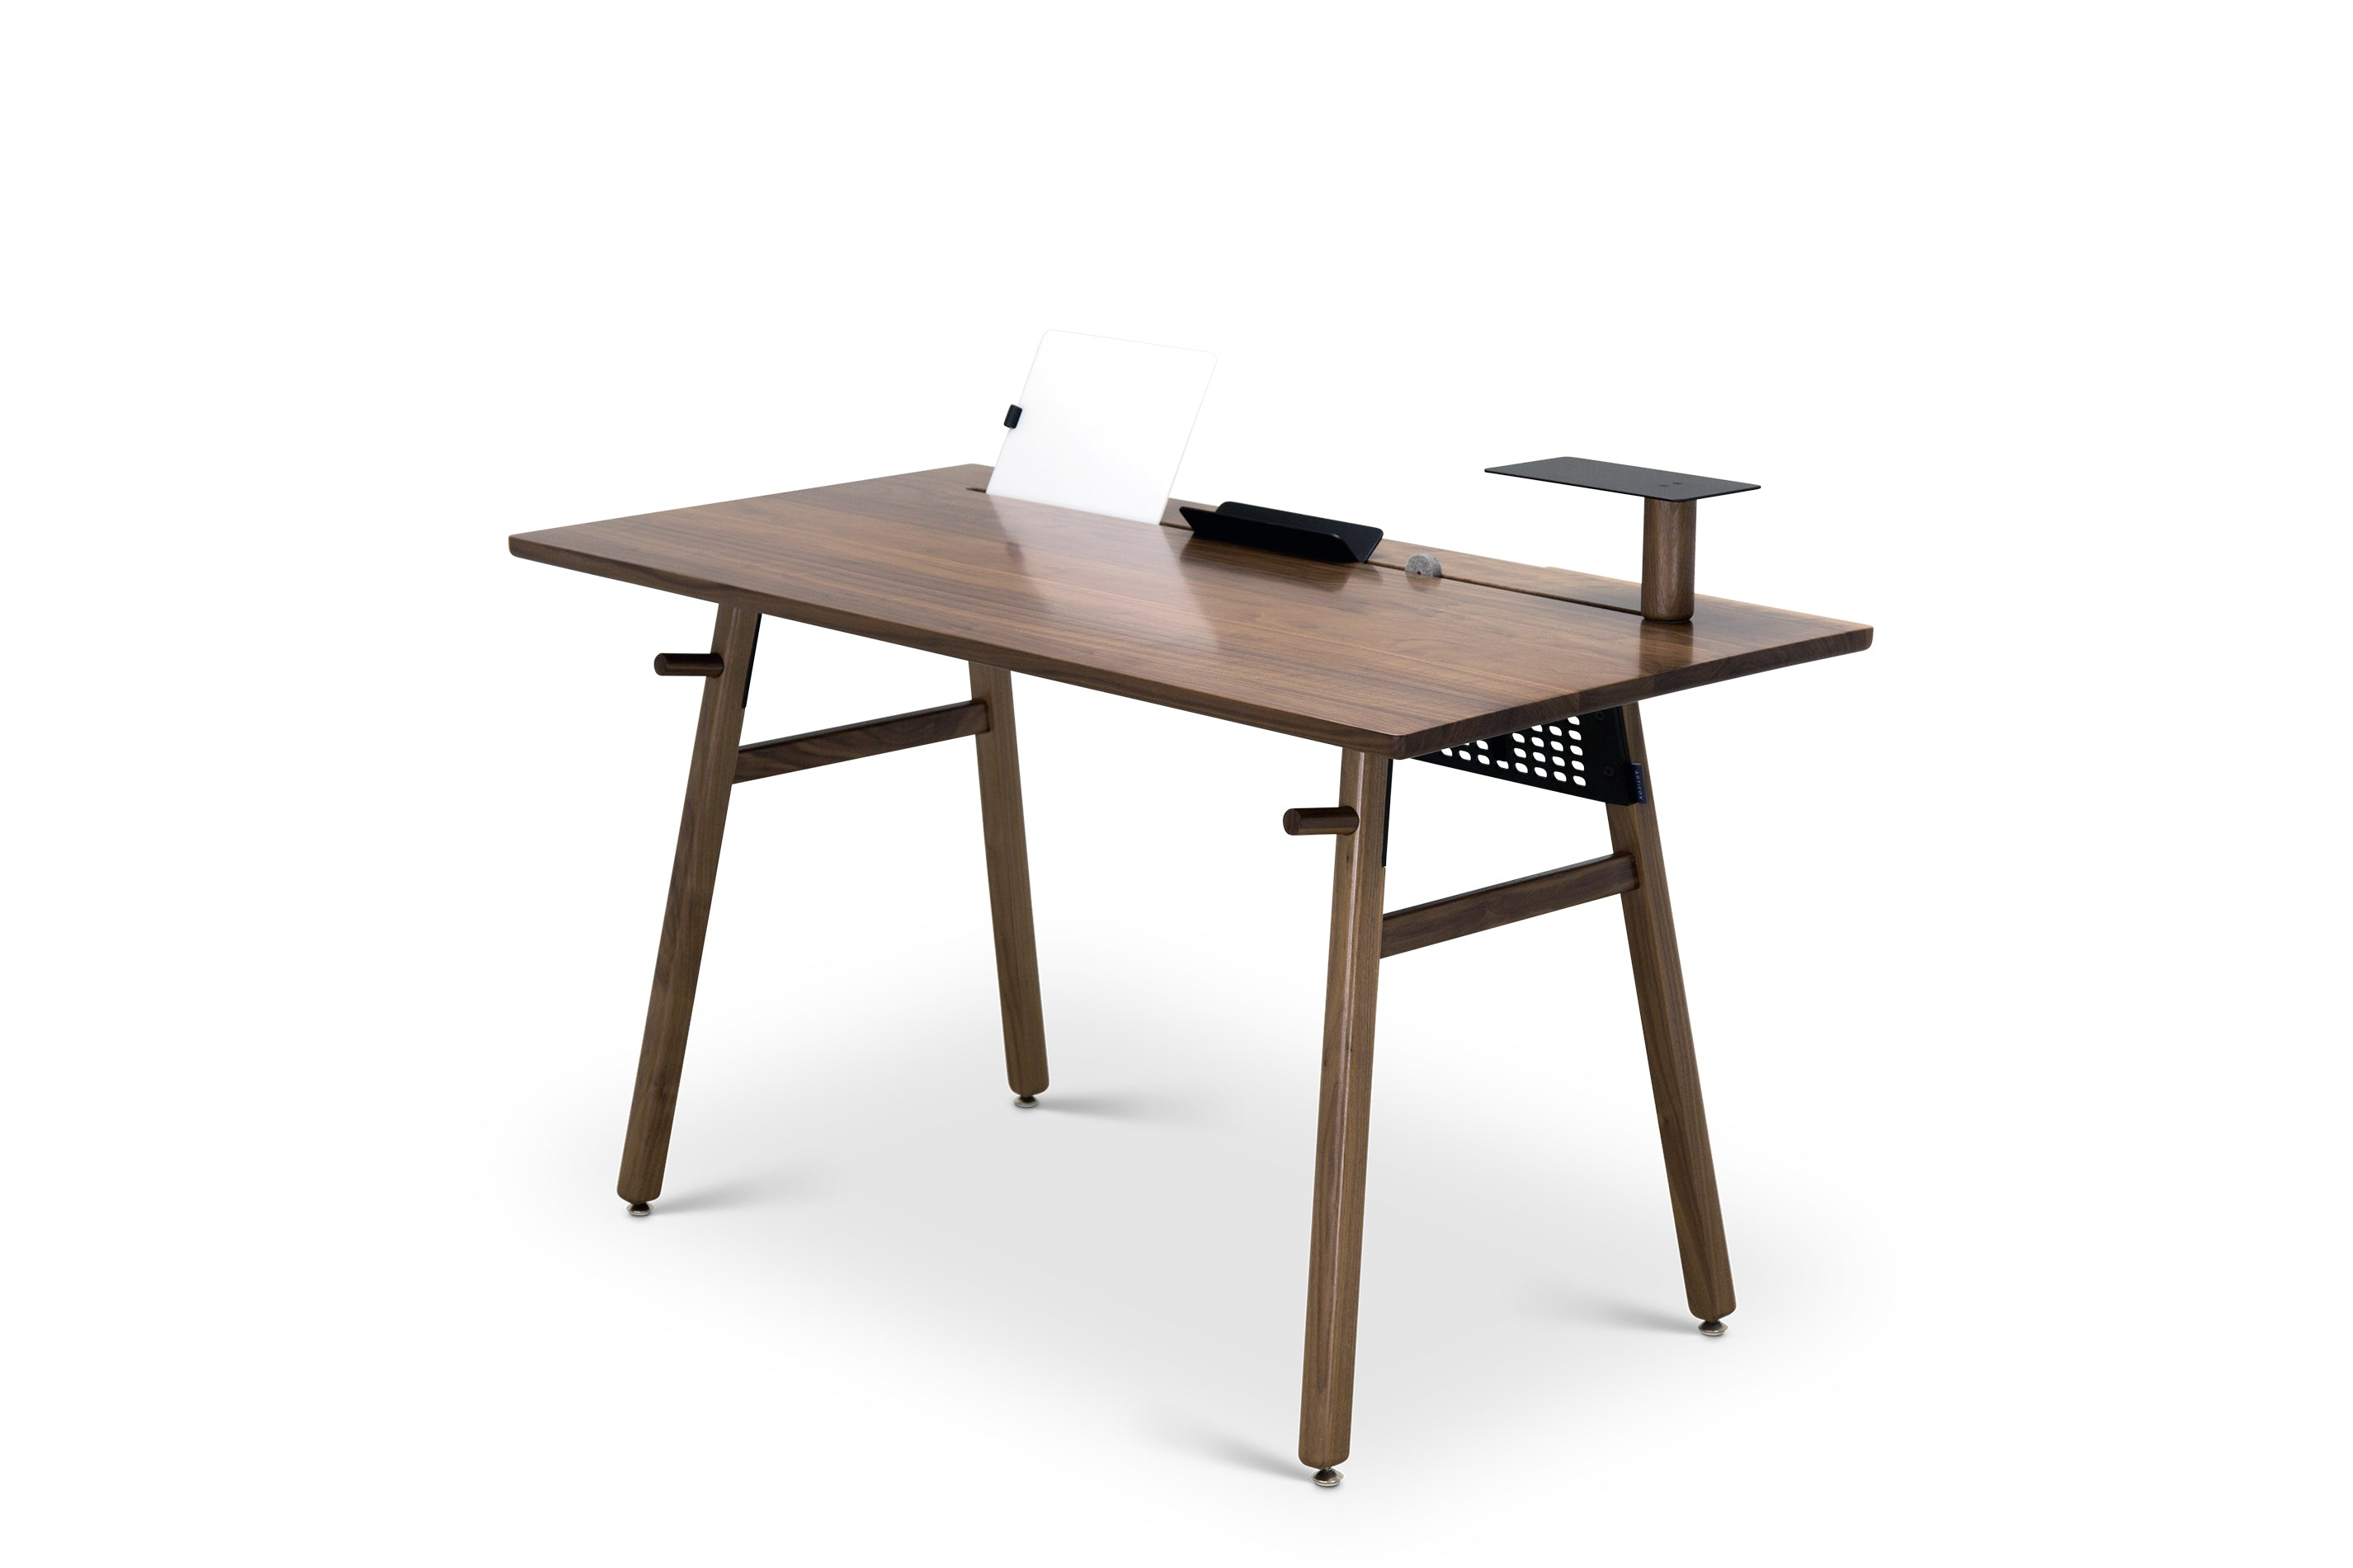 Walnut modern desk that adapts to your needs to create a minimal workspace